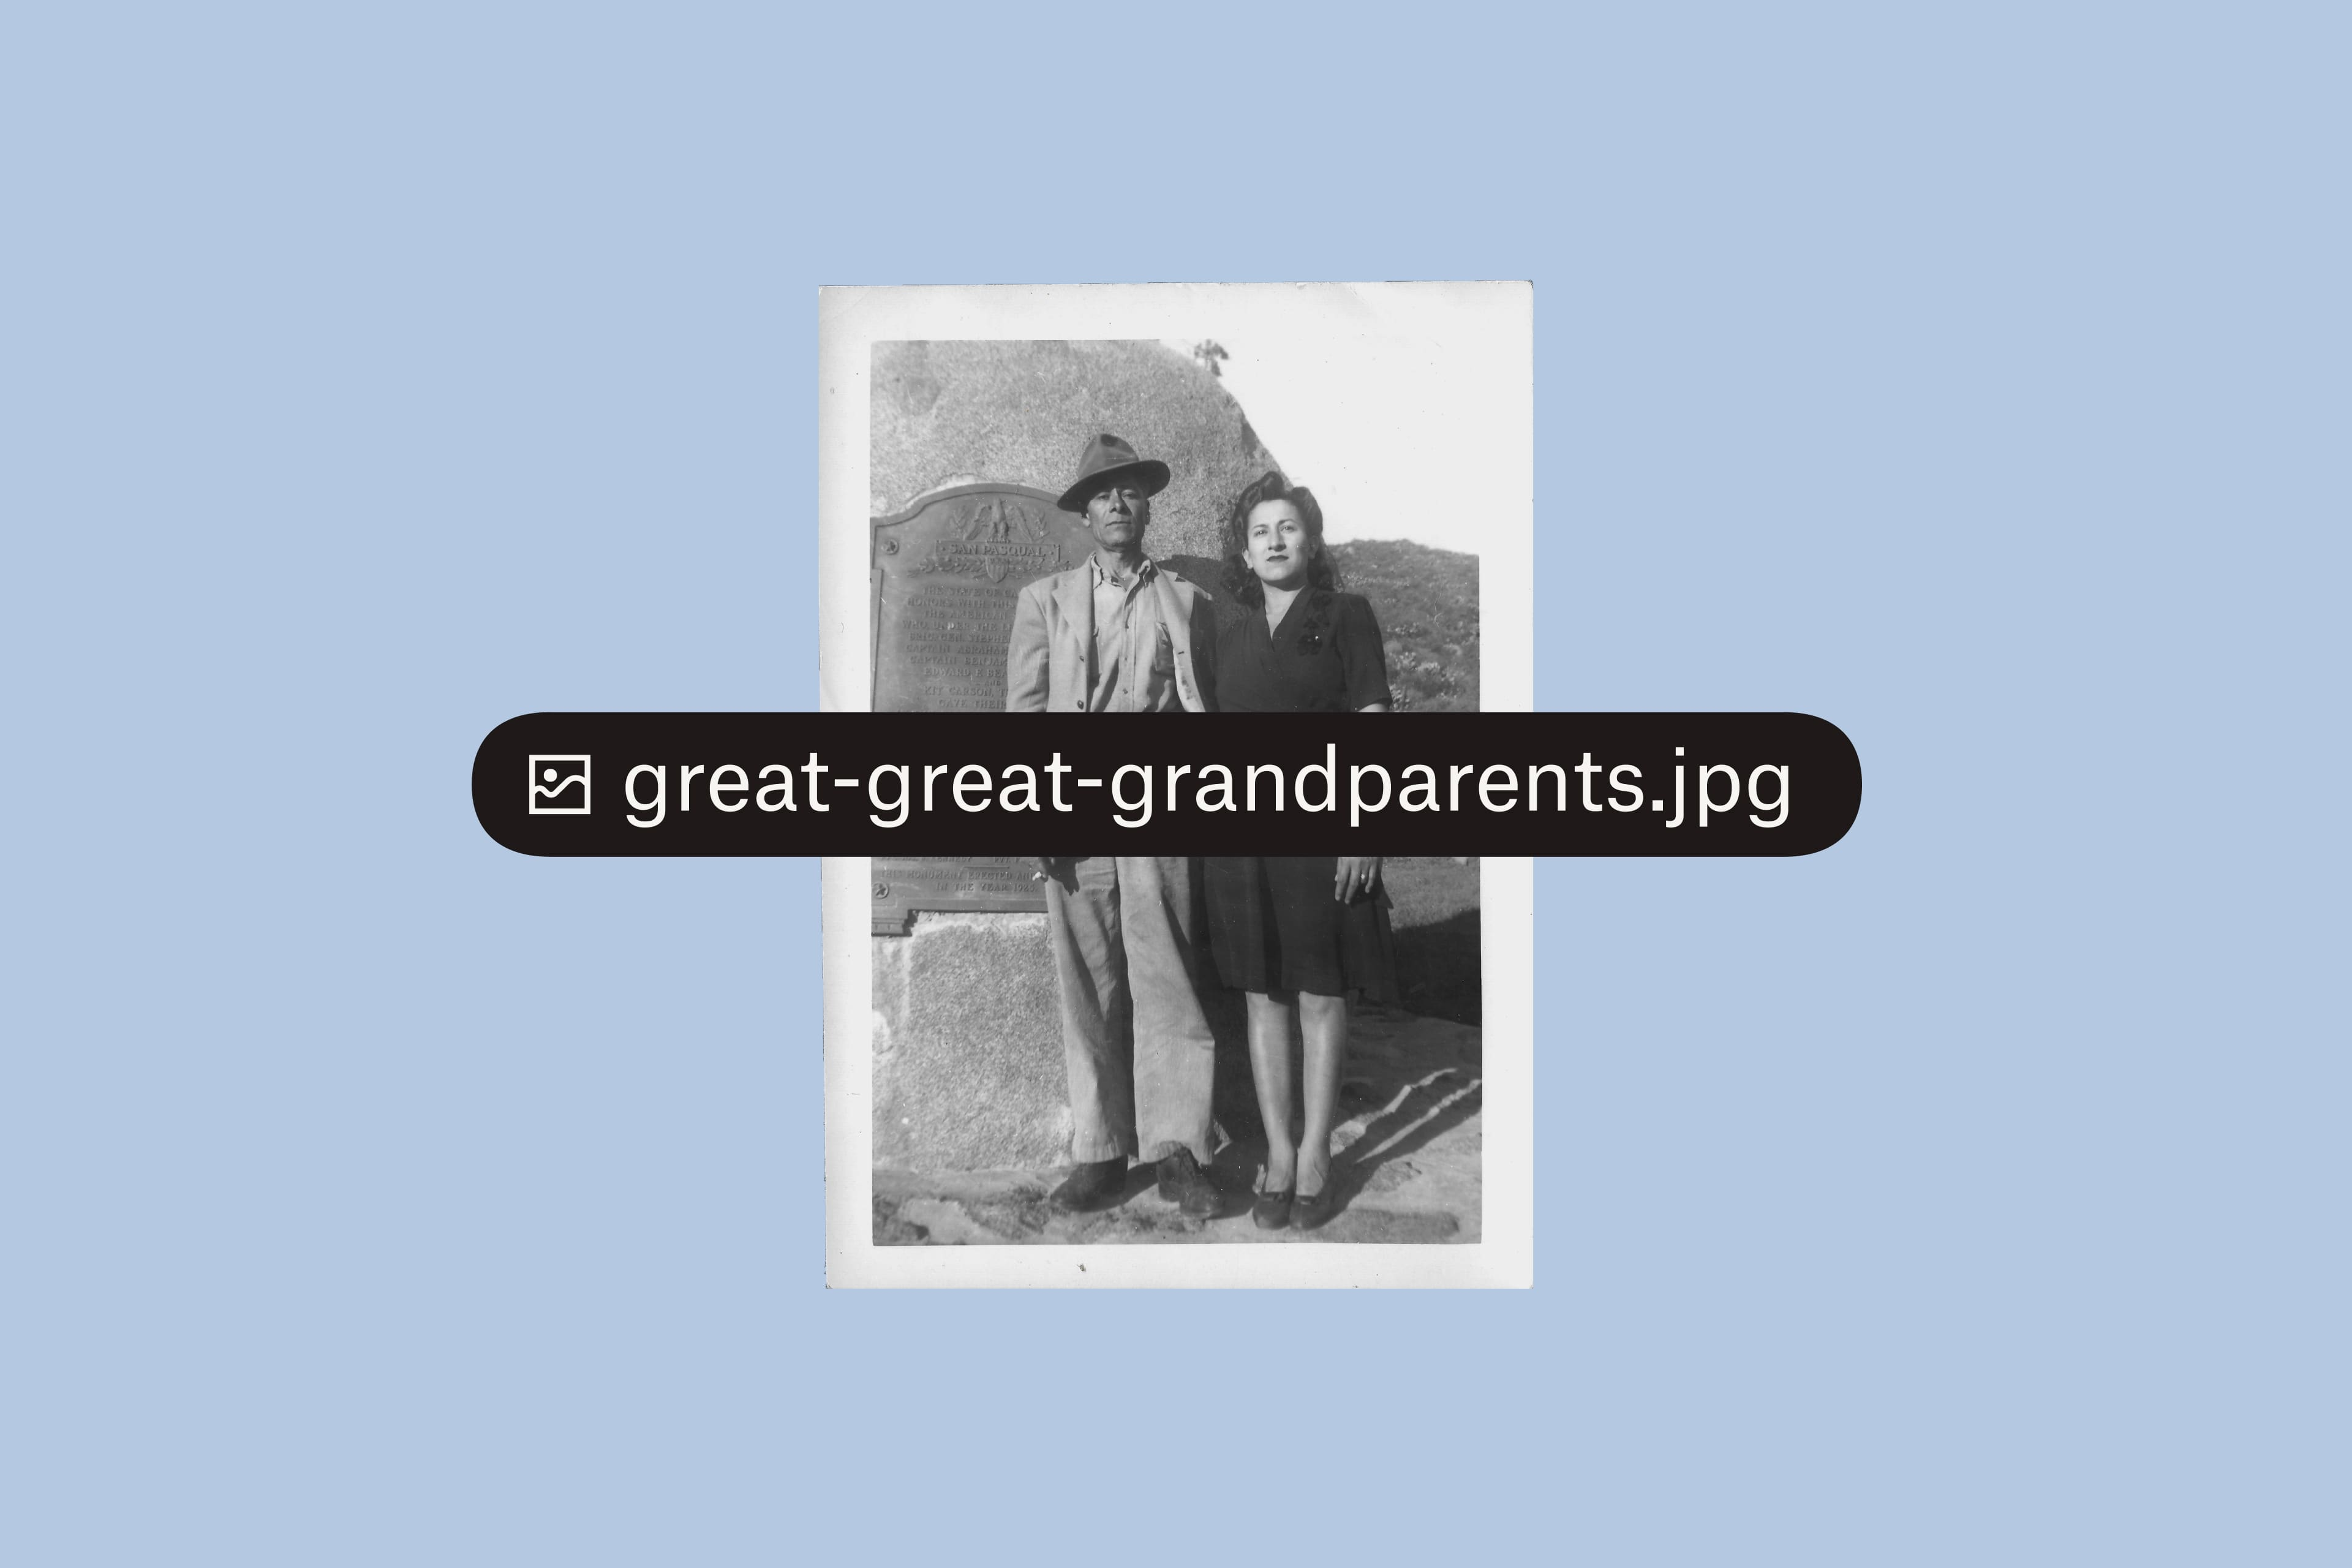 A photo saved in Dropbox of great great grandparents.